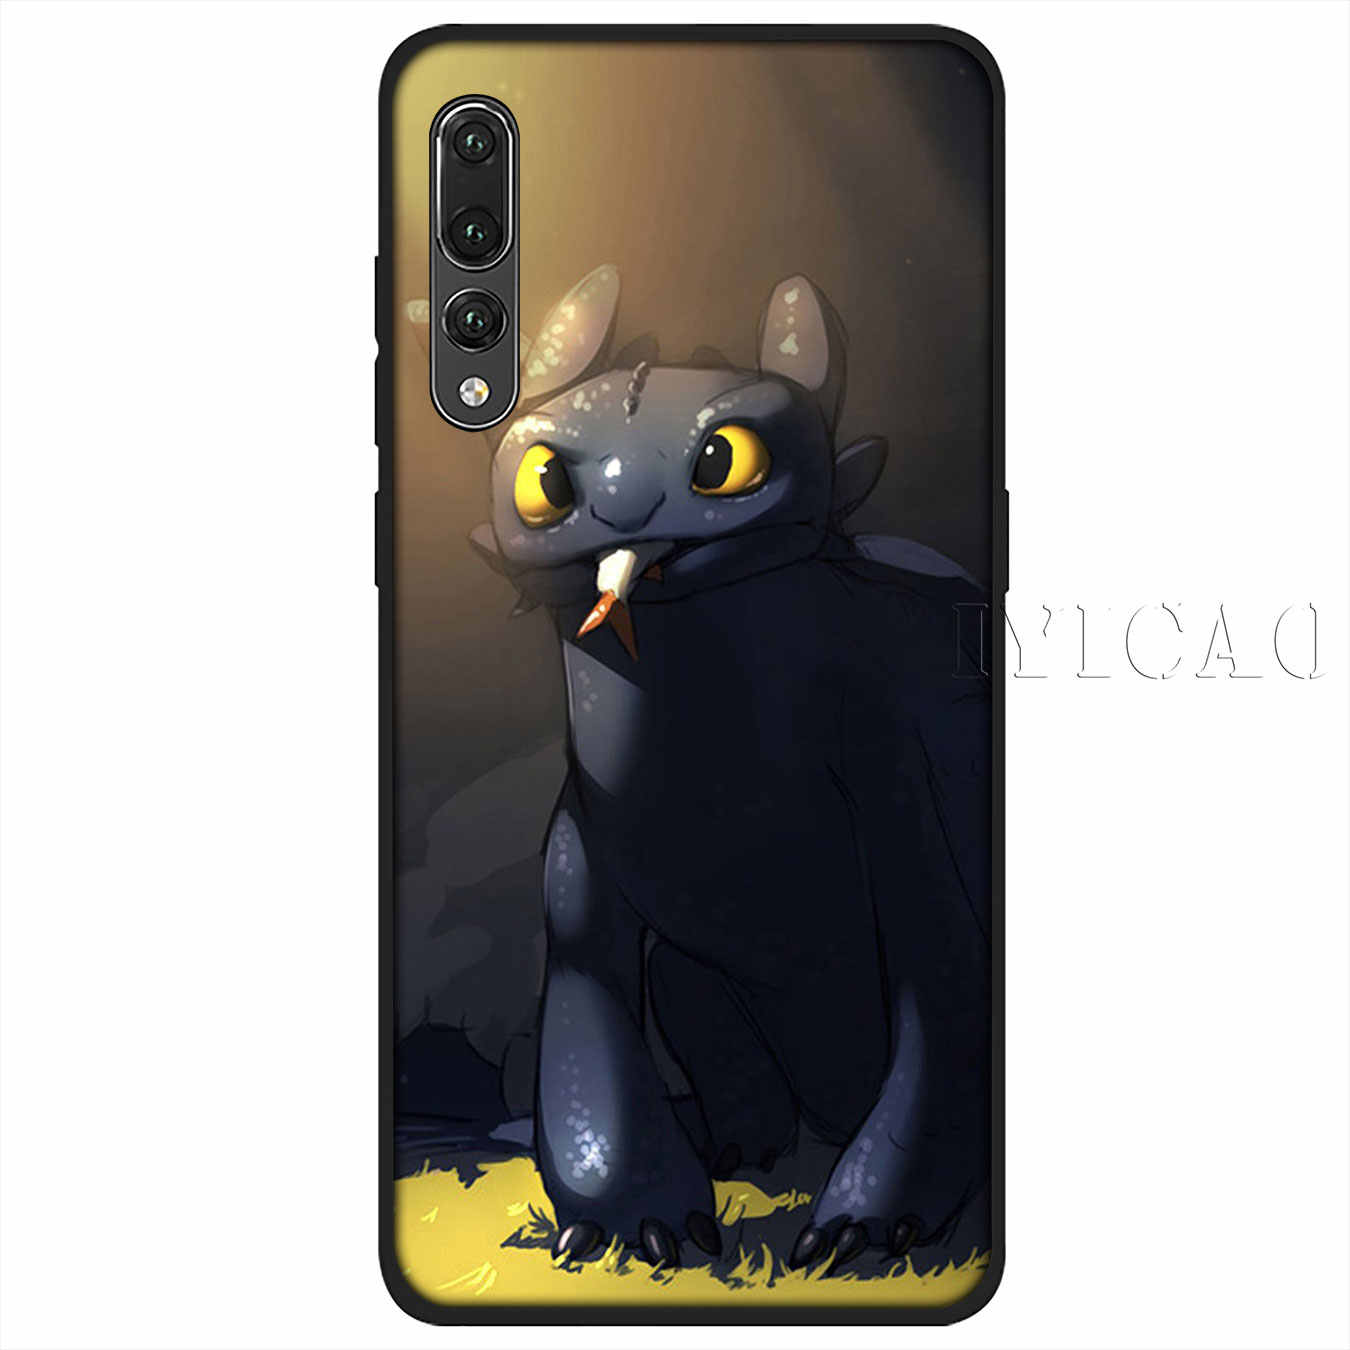 IYICAO toothless How To Train Your Dragon Soft Silicone Case for Huawei P30 P20 Pro P10 P9 P8 Lite Mini 2017 2016 P smart Z 2019